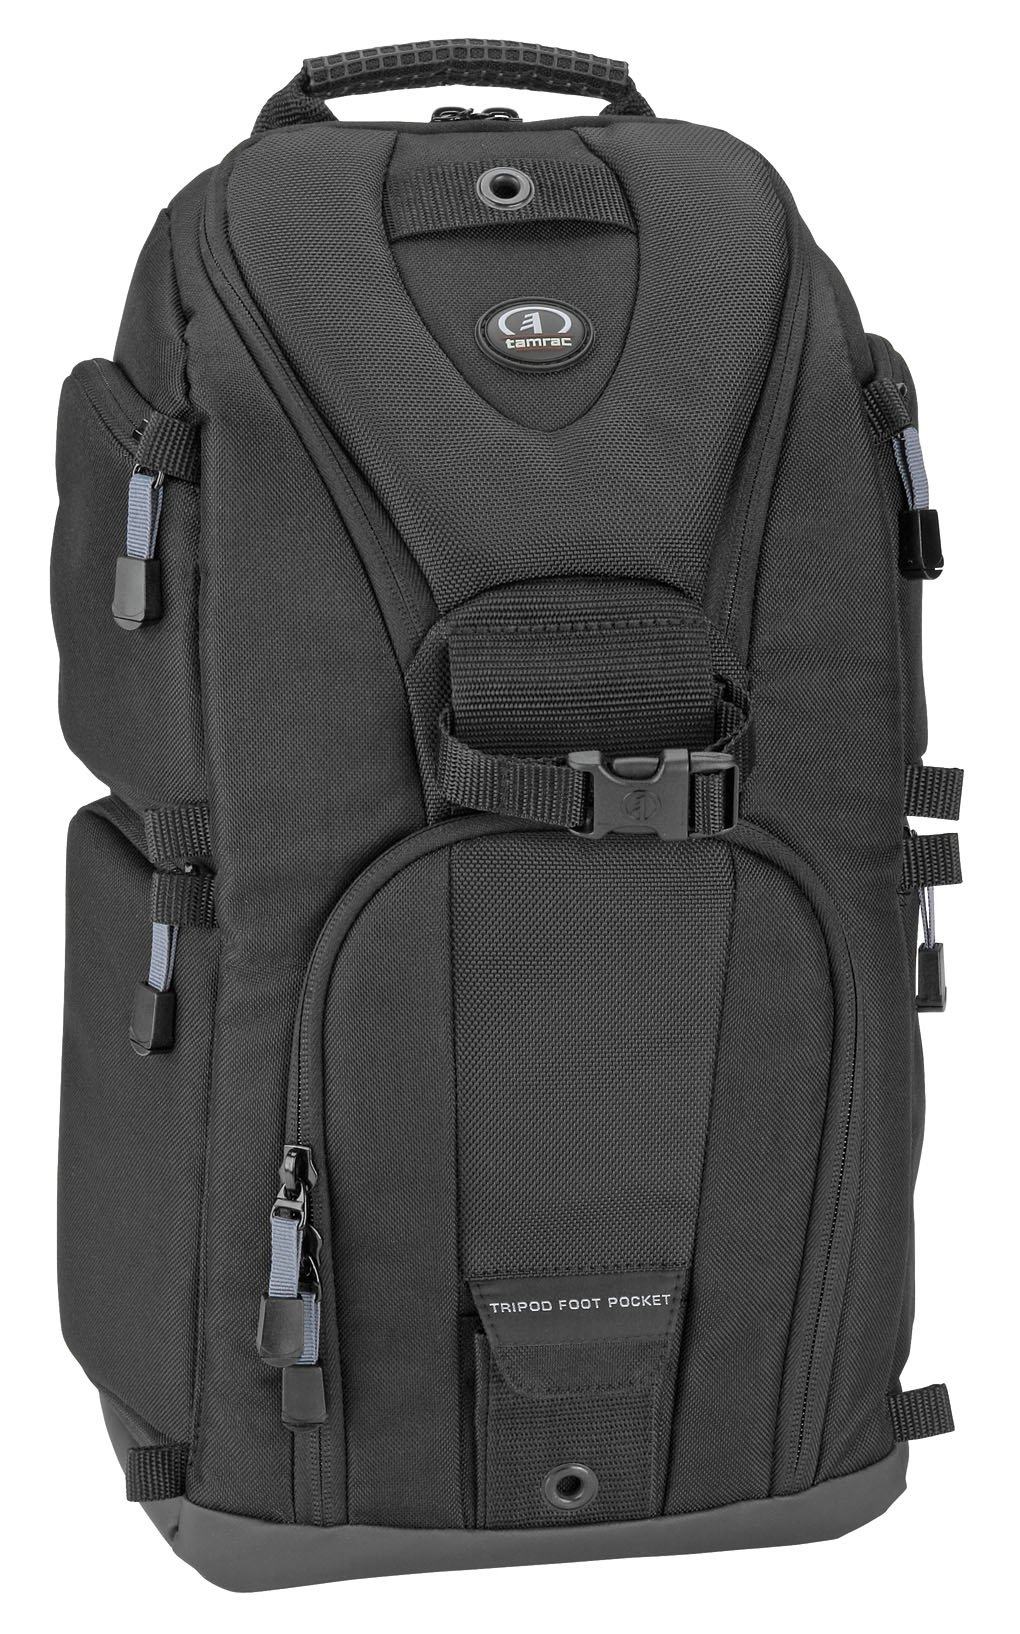 Tamrac 5786 Evolution 6 Photo Sling Backpack Bag (Black)